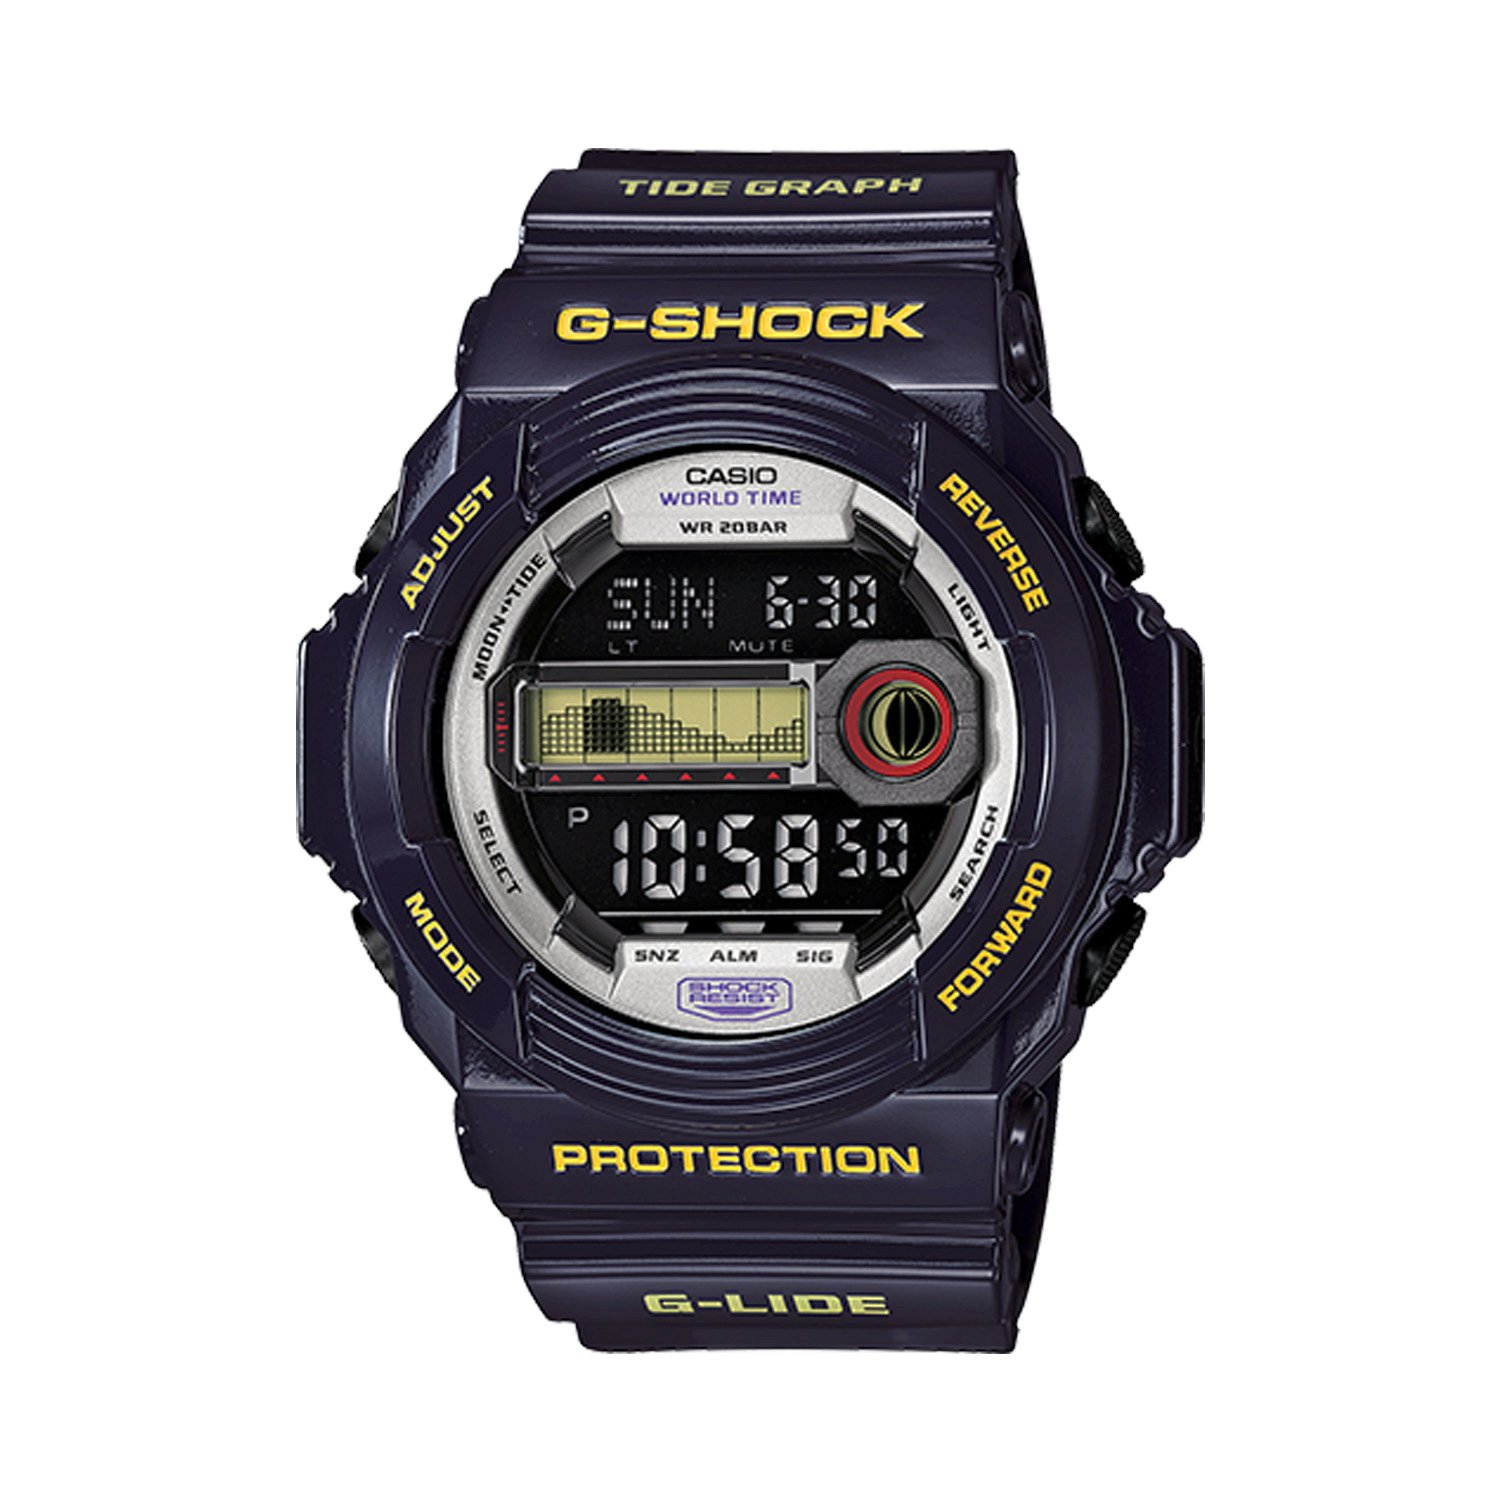 Amazon.com: G-Shock GLX-150 G-Lide Classic Series Mens Stylish Watch - Purple/One Size: Casio: Watches